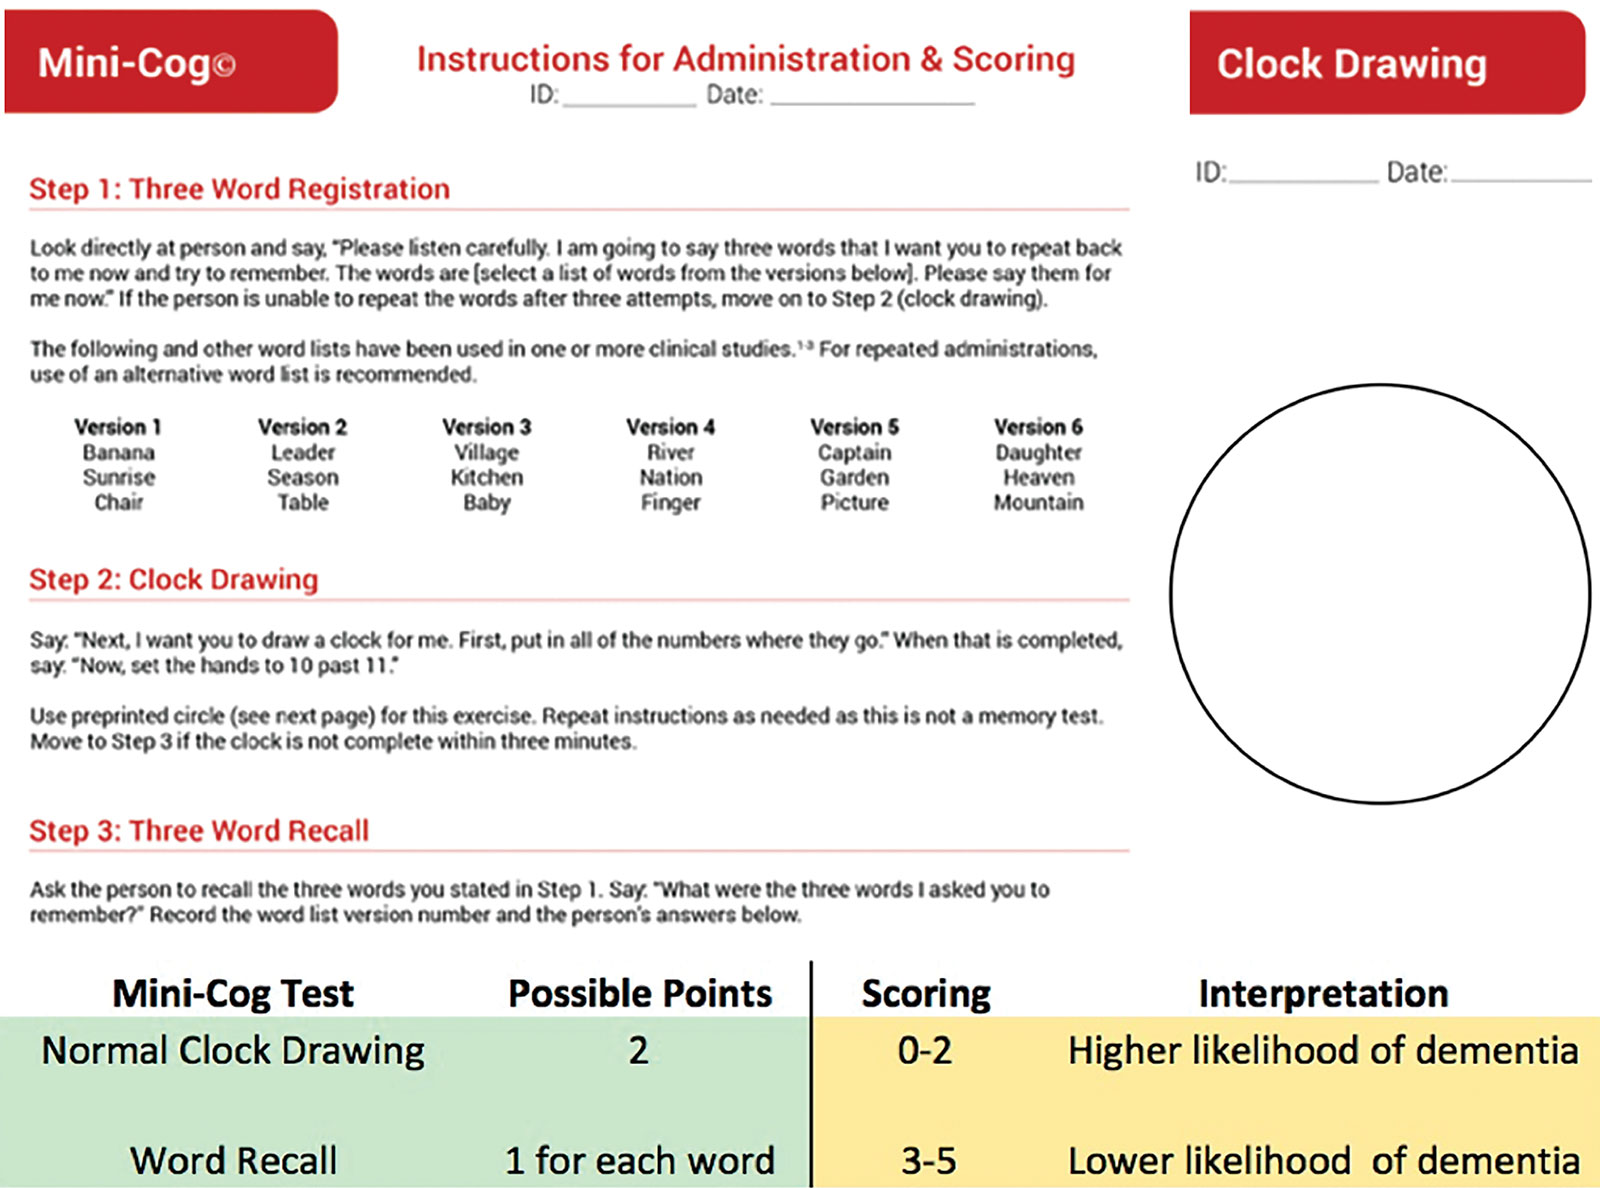 "Figure 1. The Mini-Cog test. There are three steps that include a score for accuracy of ""clock drawing"" and ""three word recall,"" resulting in a cumulative score that can increase the detection of cognitive impairment.<br /><br />Reprinted with permission from Soo Borson, MD. See mini-cog.com for full administration instructions."